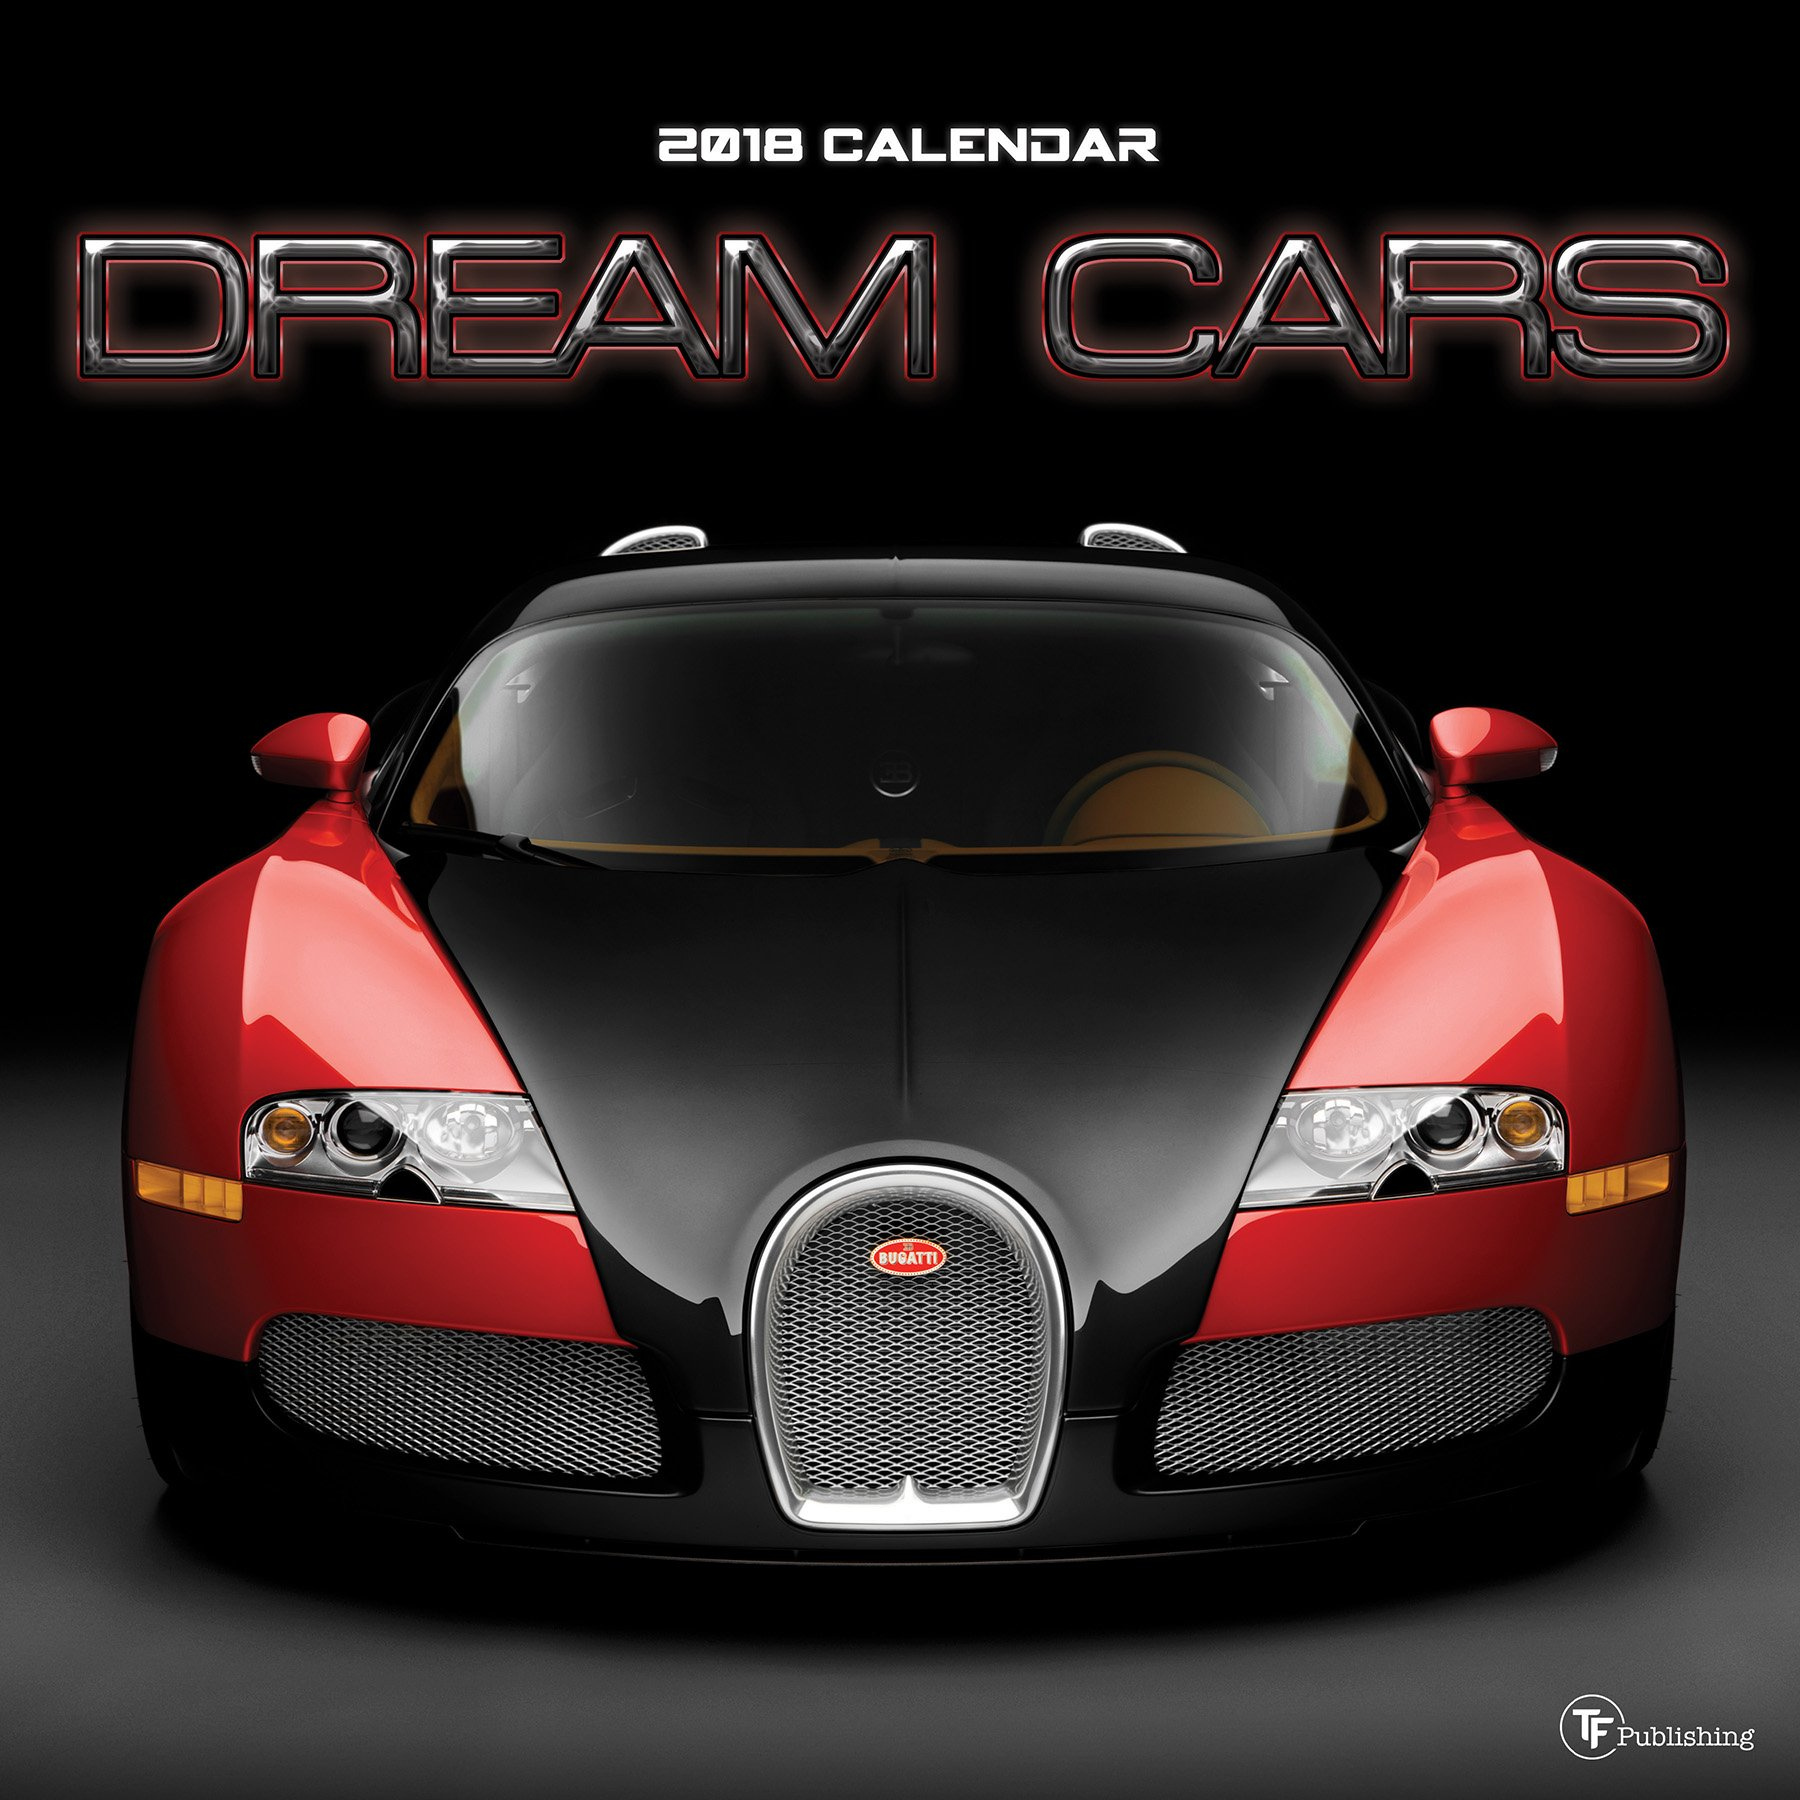 2018 Dream Cars Wall Calendar: TF Publishing: 9781683750611: Amazon.com:  Books